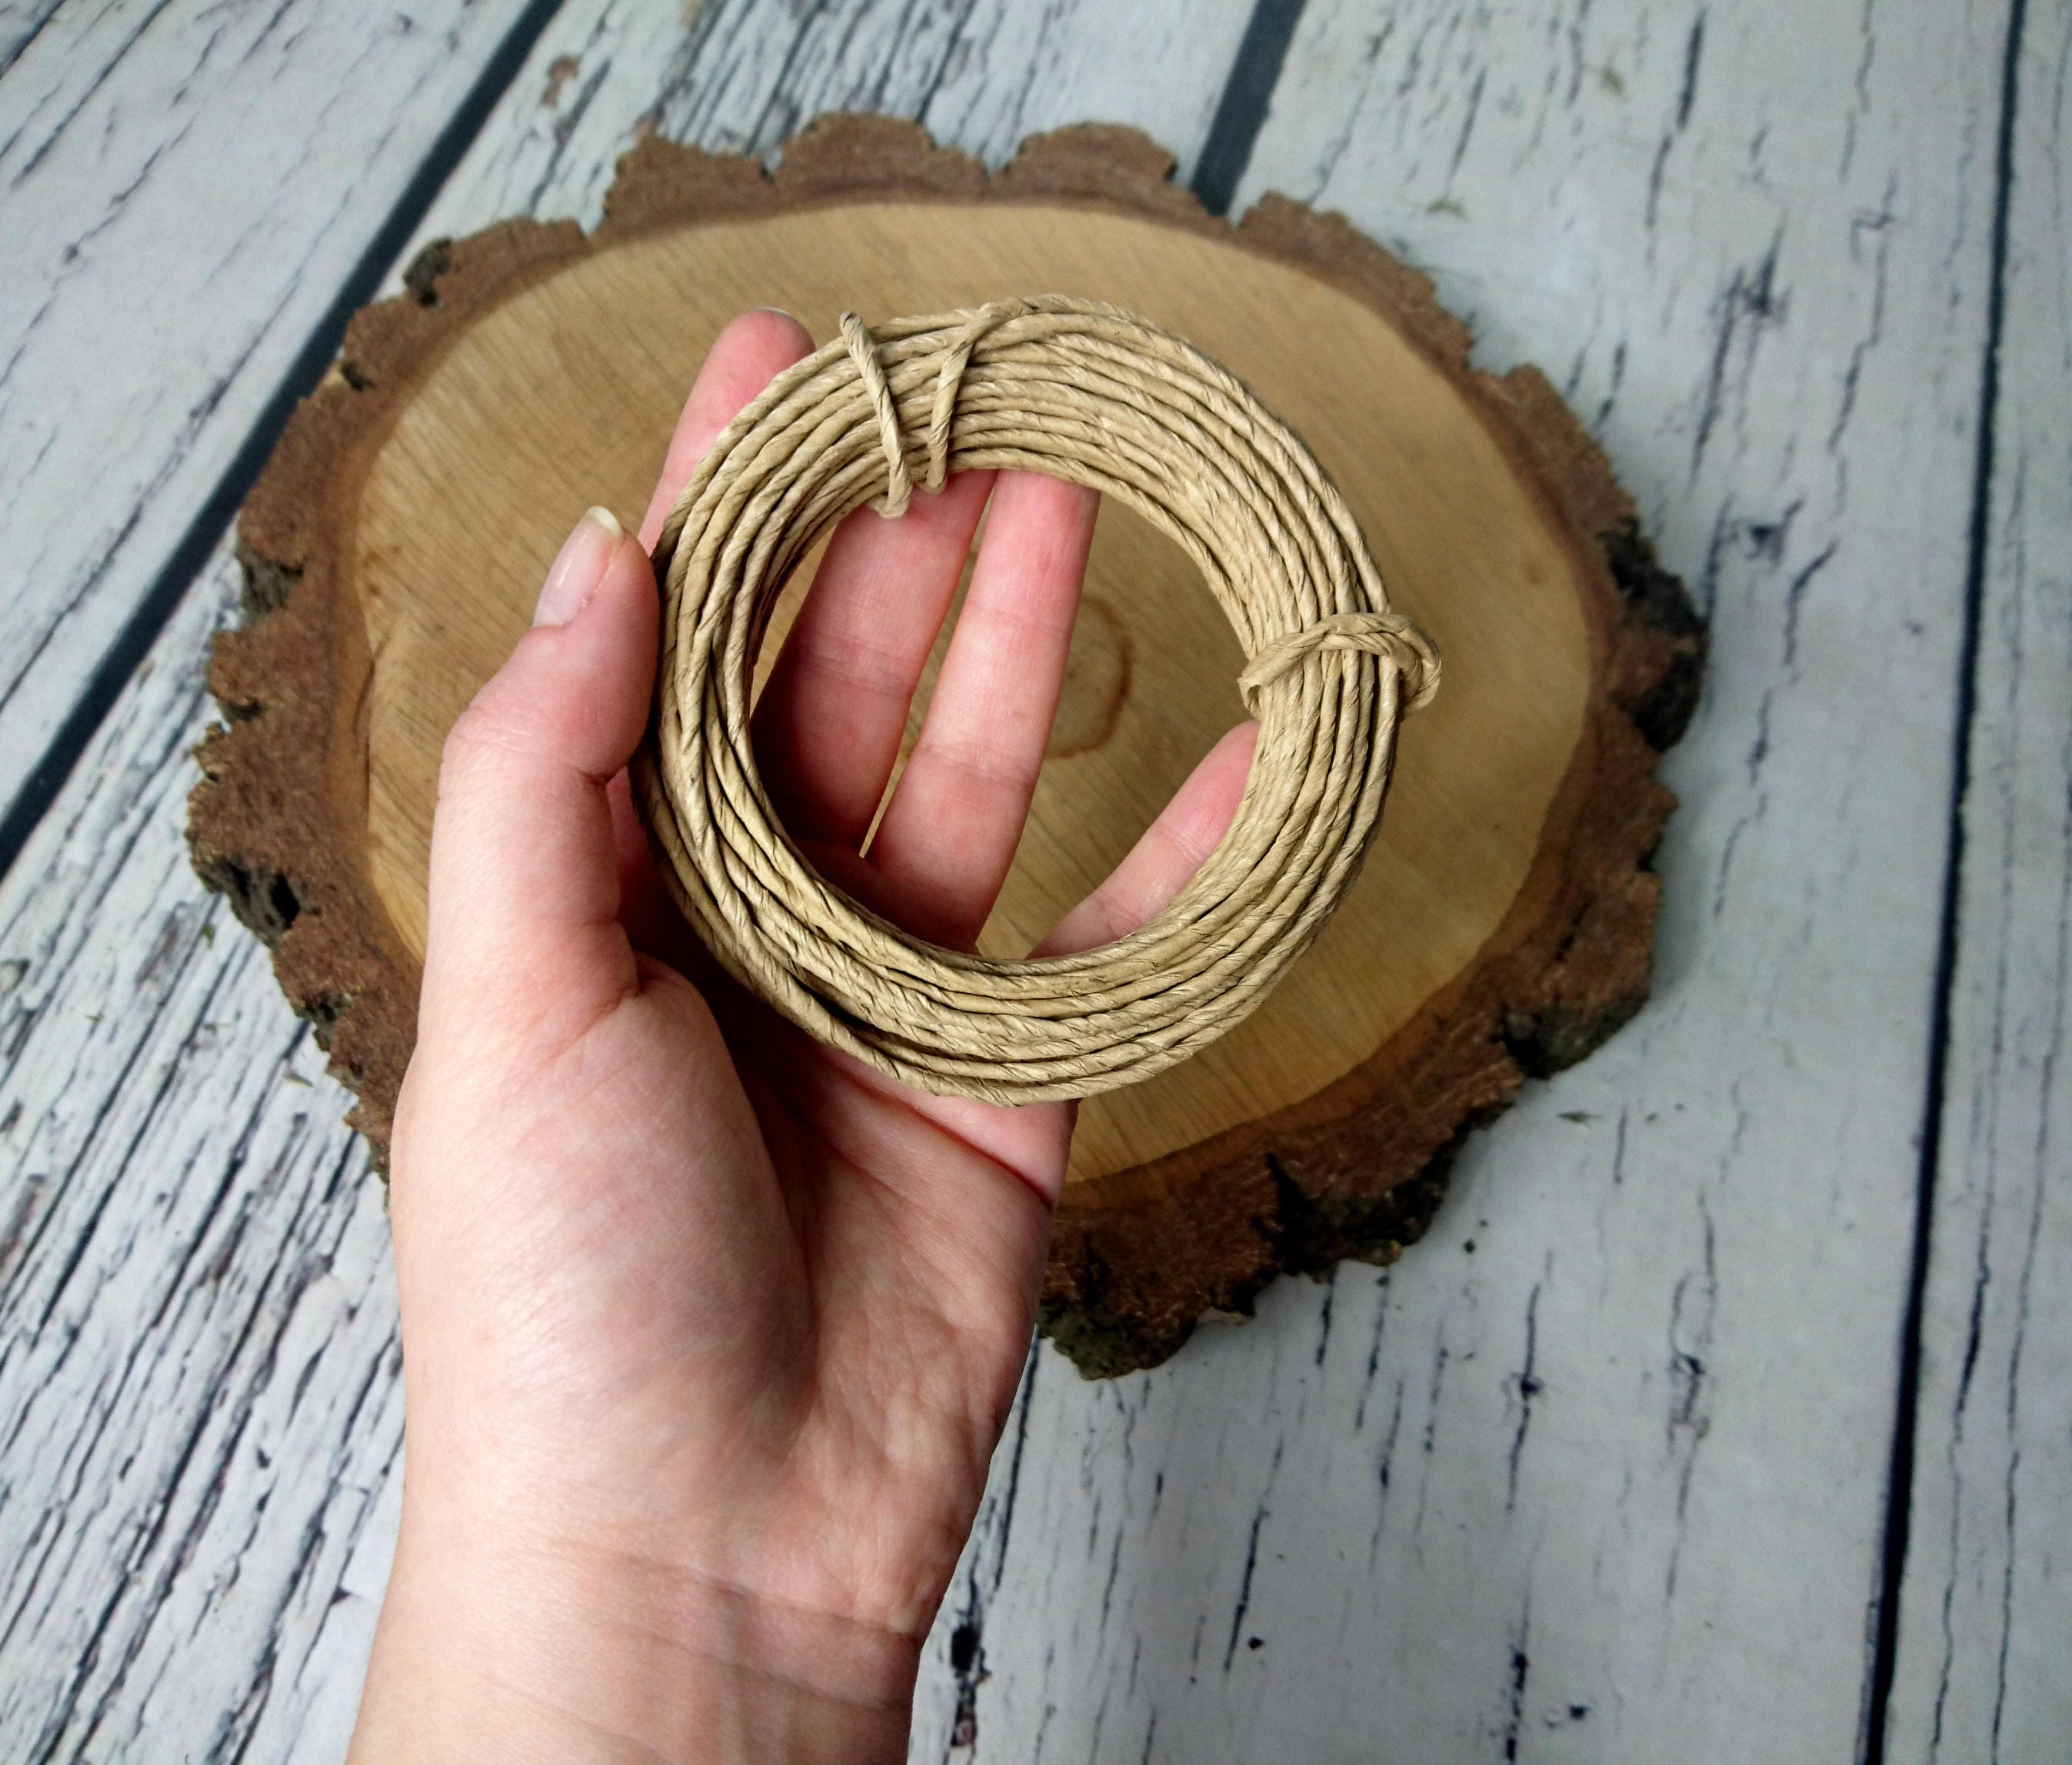 Paper covered rustic wire 10m 109yd natural beige light brown paper covered rustic wire 10m 109yd natural beige light brown flower crown wreath florist supply wedding flowers diy decor bouquet woodland izmirmasajfo